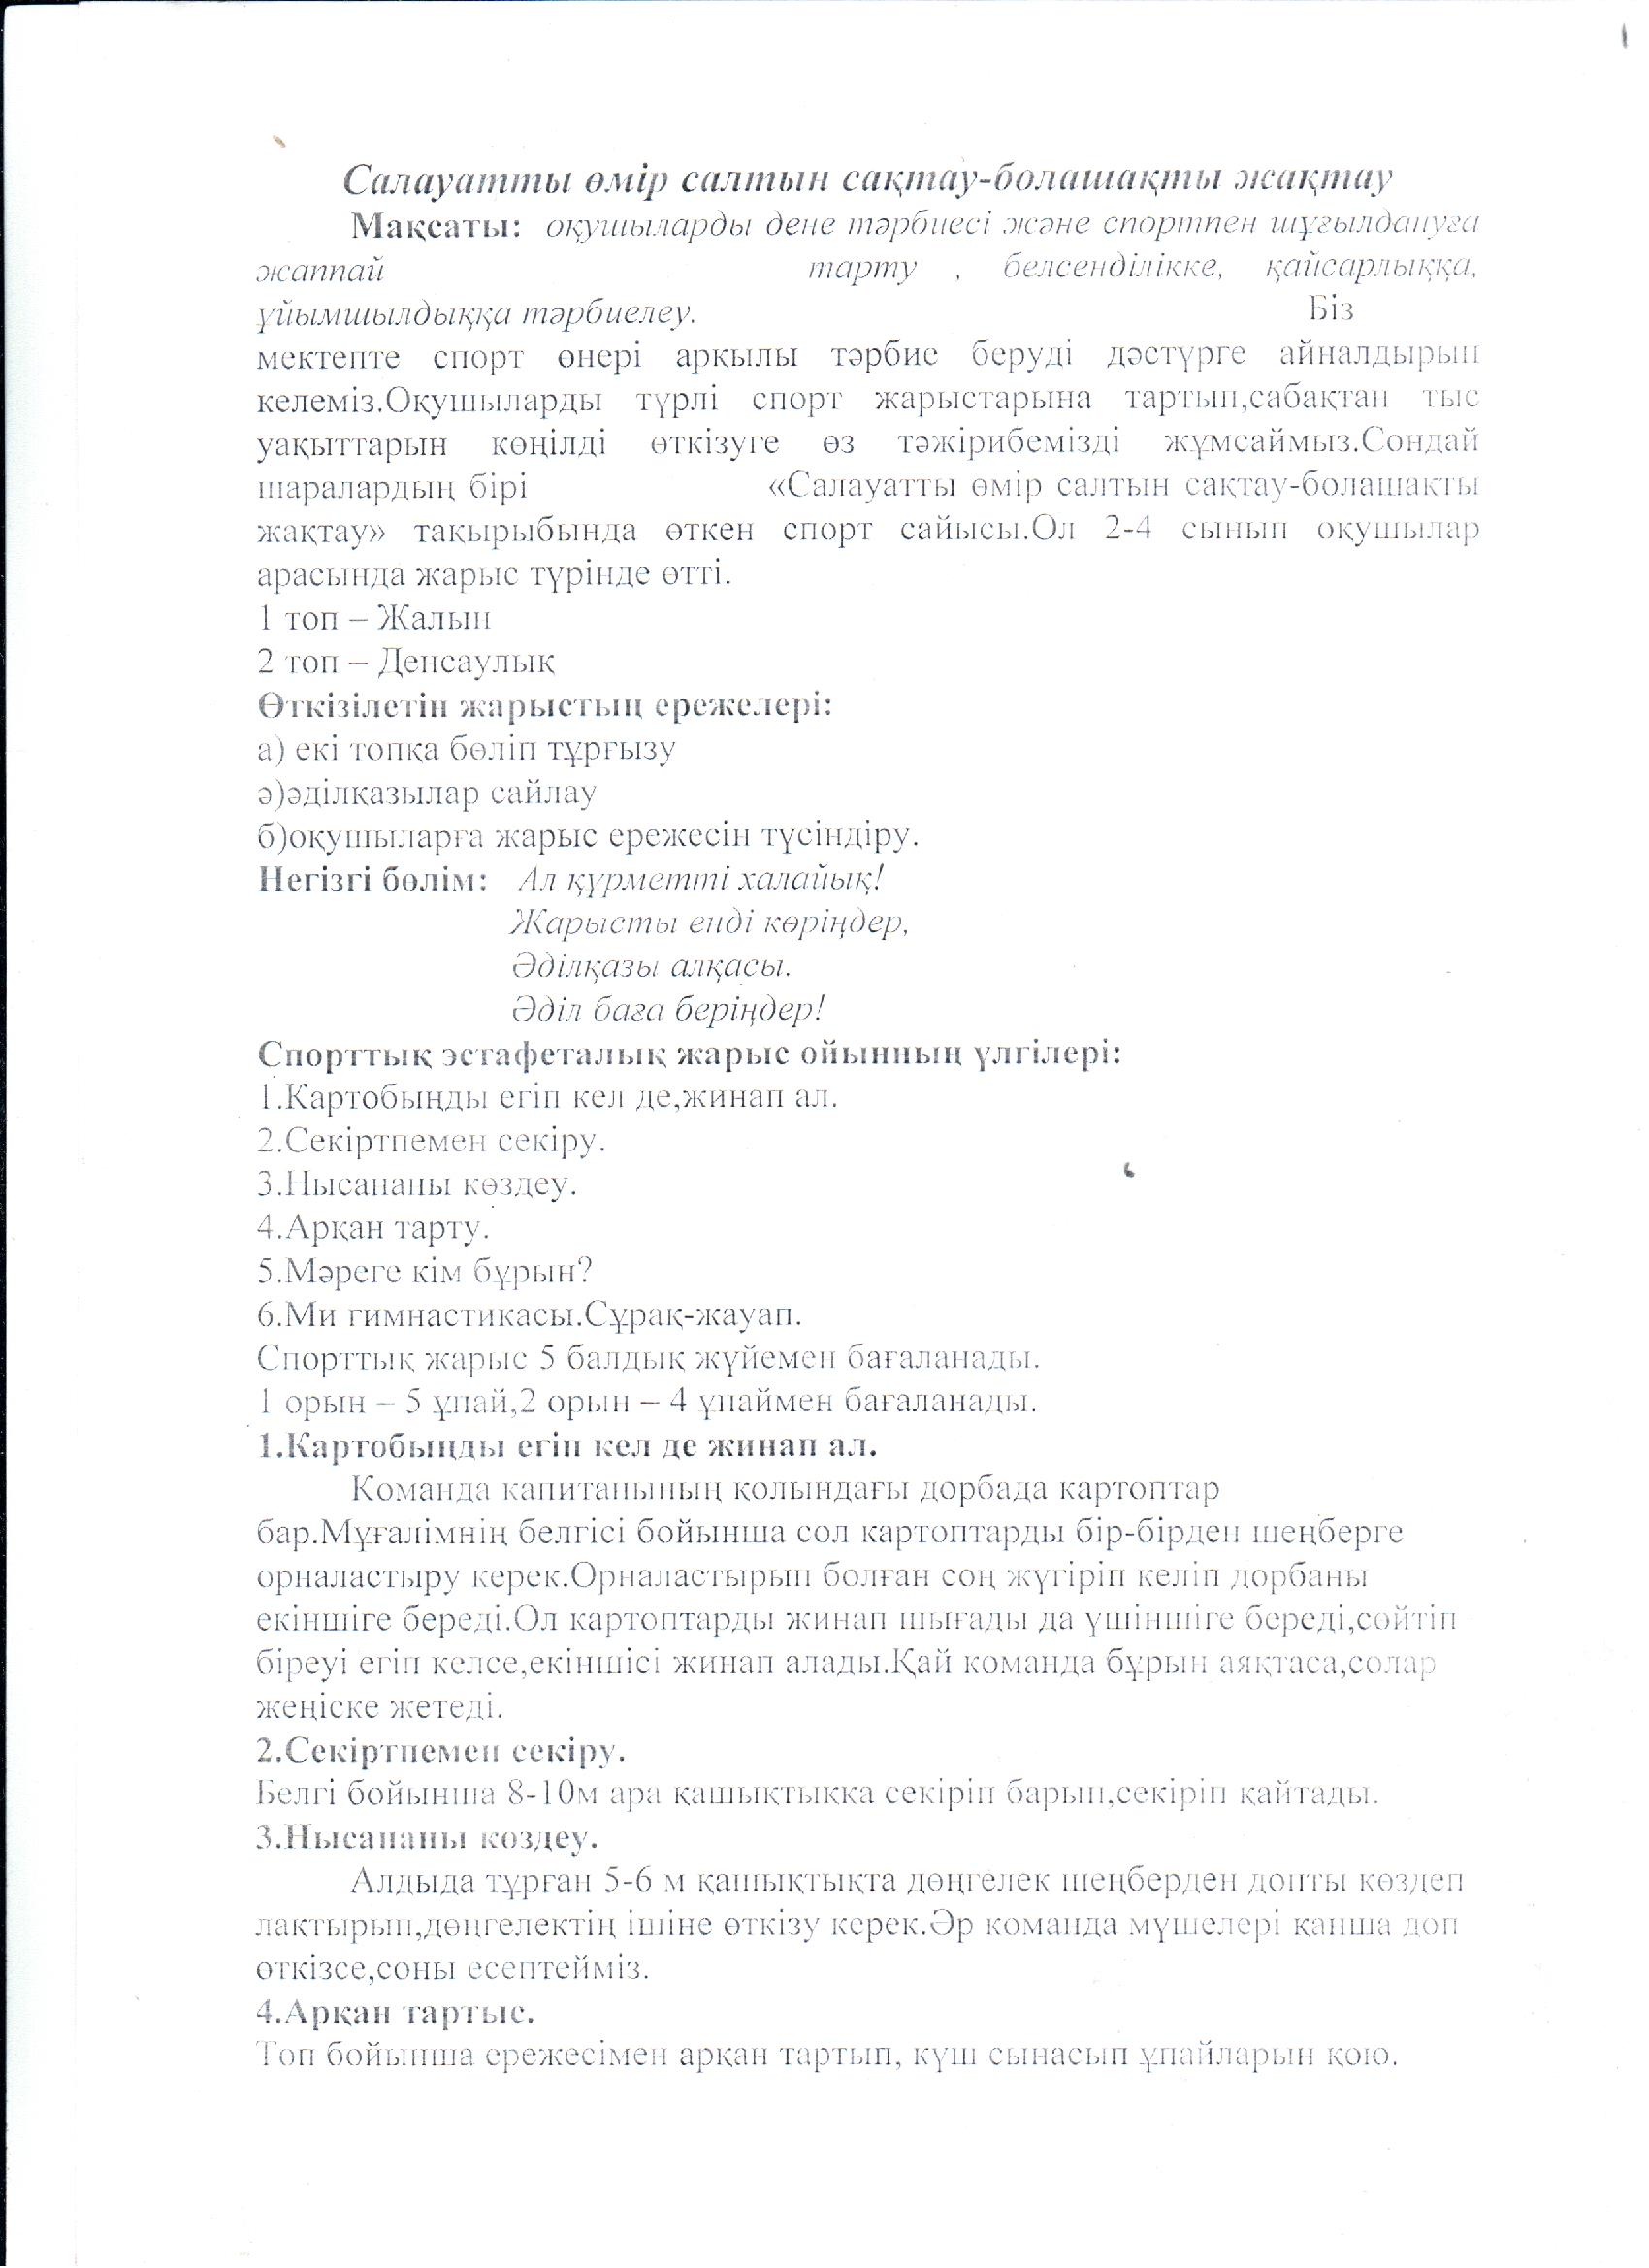 C:\Users\галамат\Documents\Scanned Documents\Documents\гулмира 3.jpeg